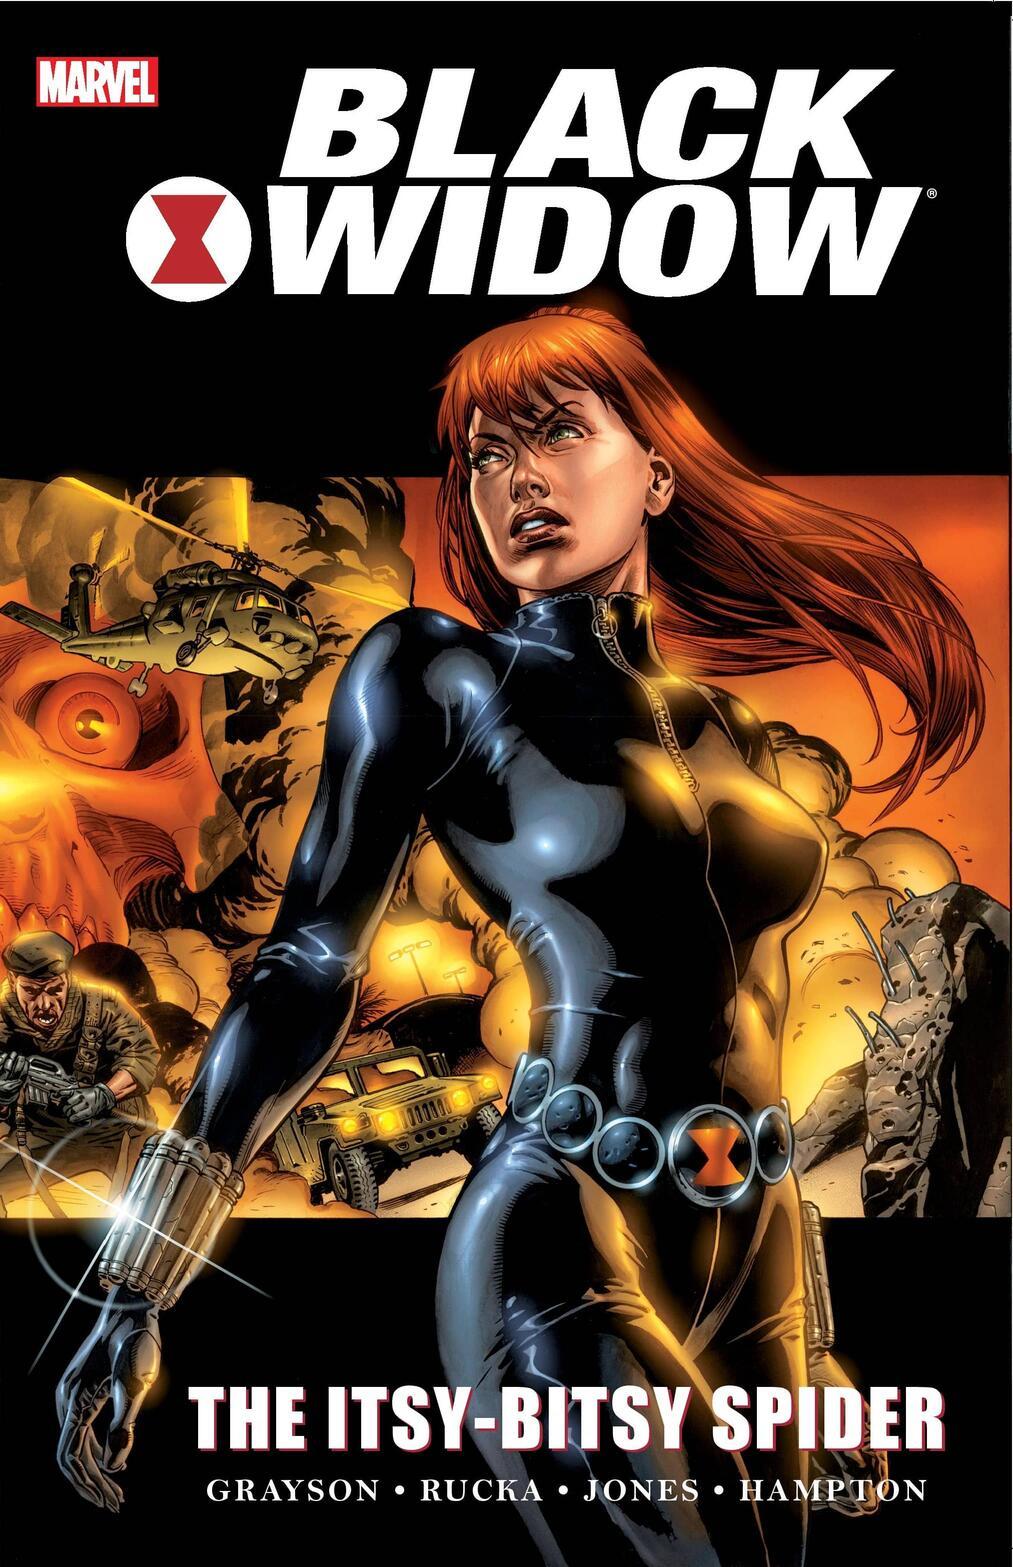 Cover to BLACK WIDOW: THE ITSY-BITSY SPIDER.